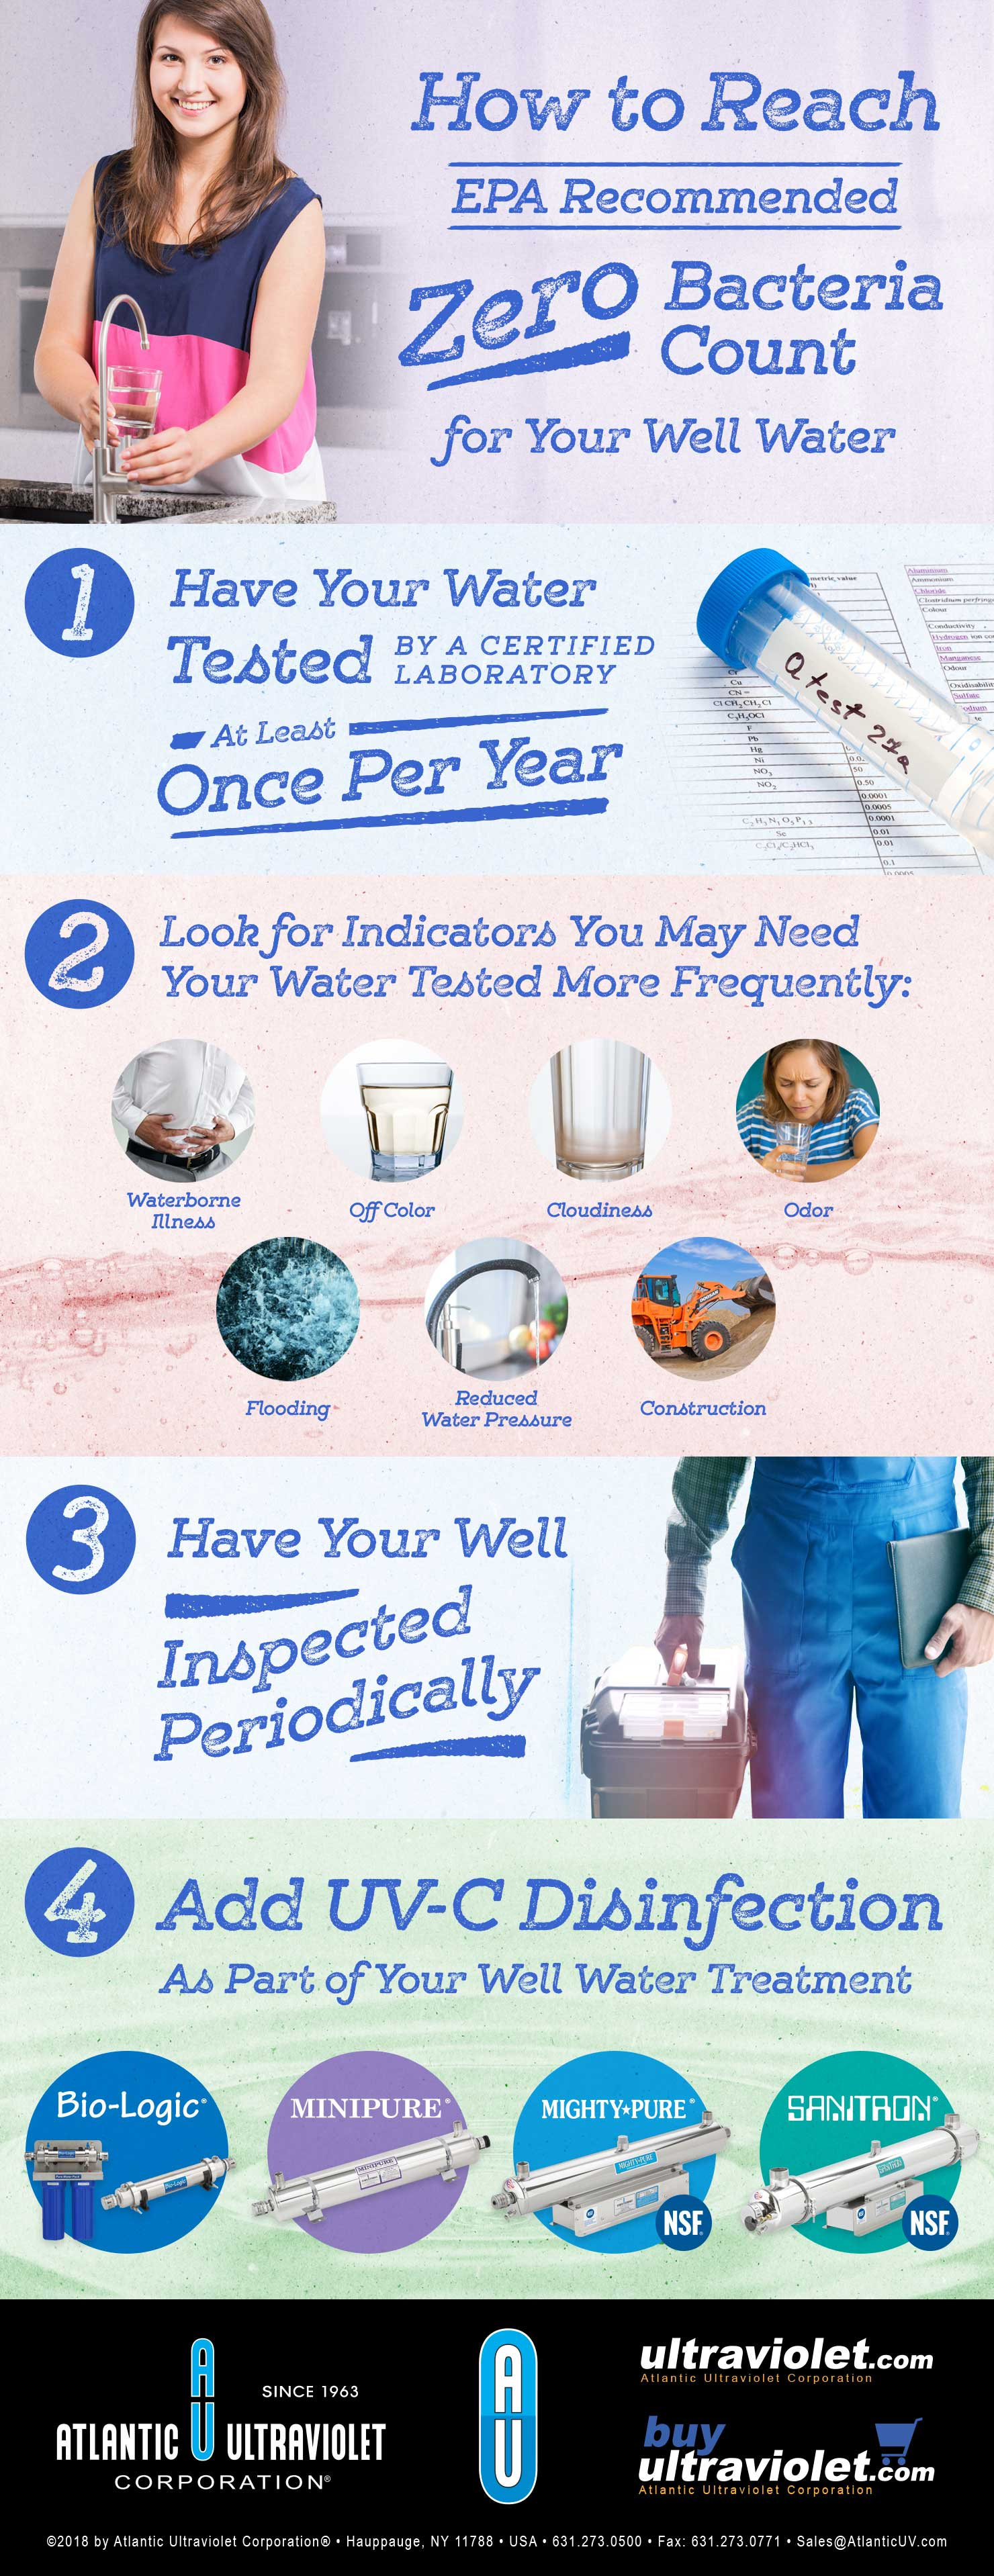 How to Reach EPA Recommended Zero Bacteria Count for Your Well Water - Infographic